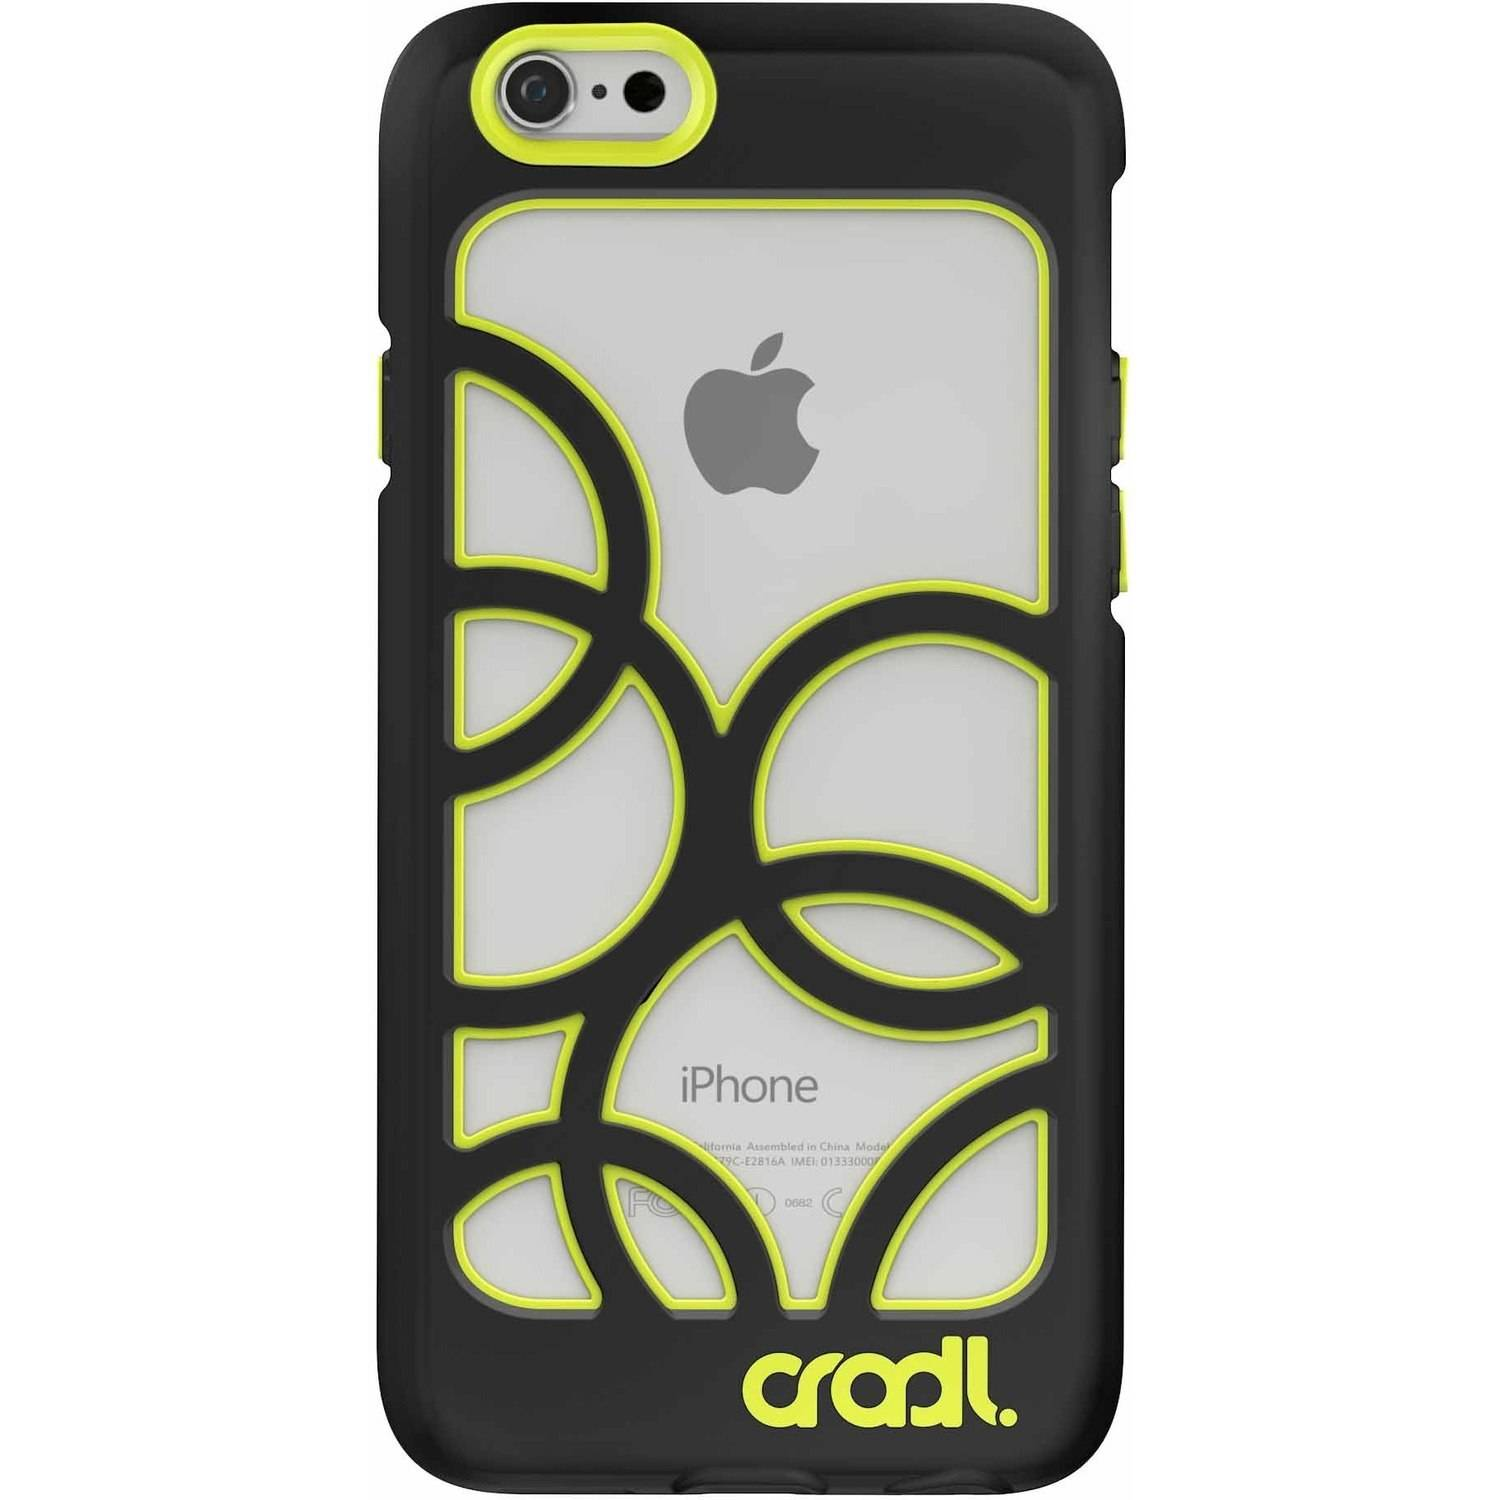 cradl. Bubble Phone Case for Apple iPhone 6/6s, Black